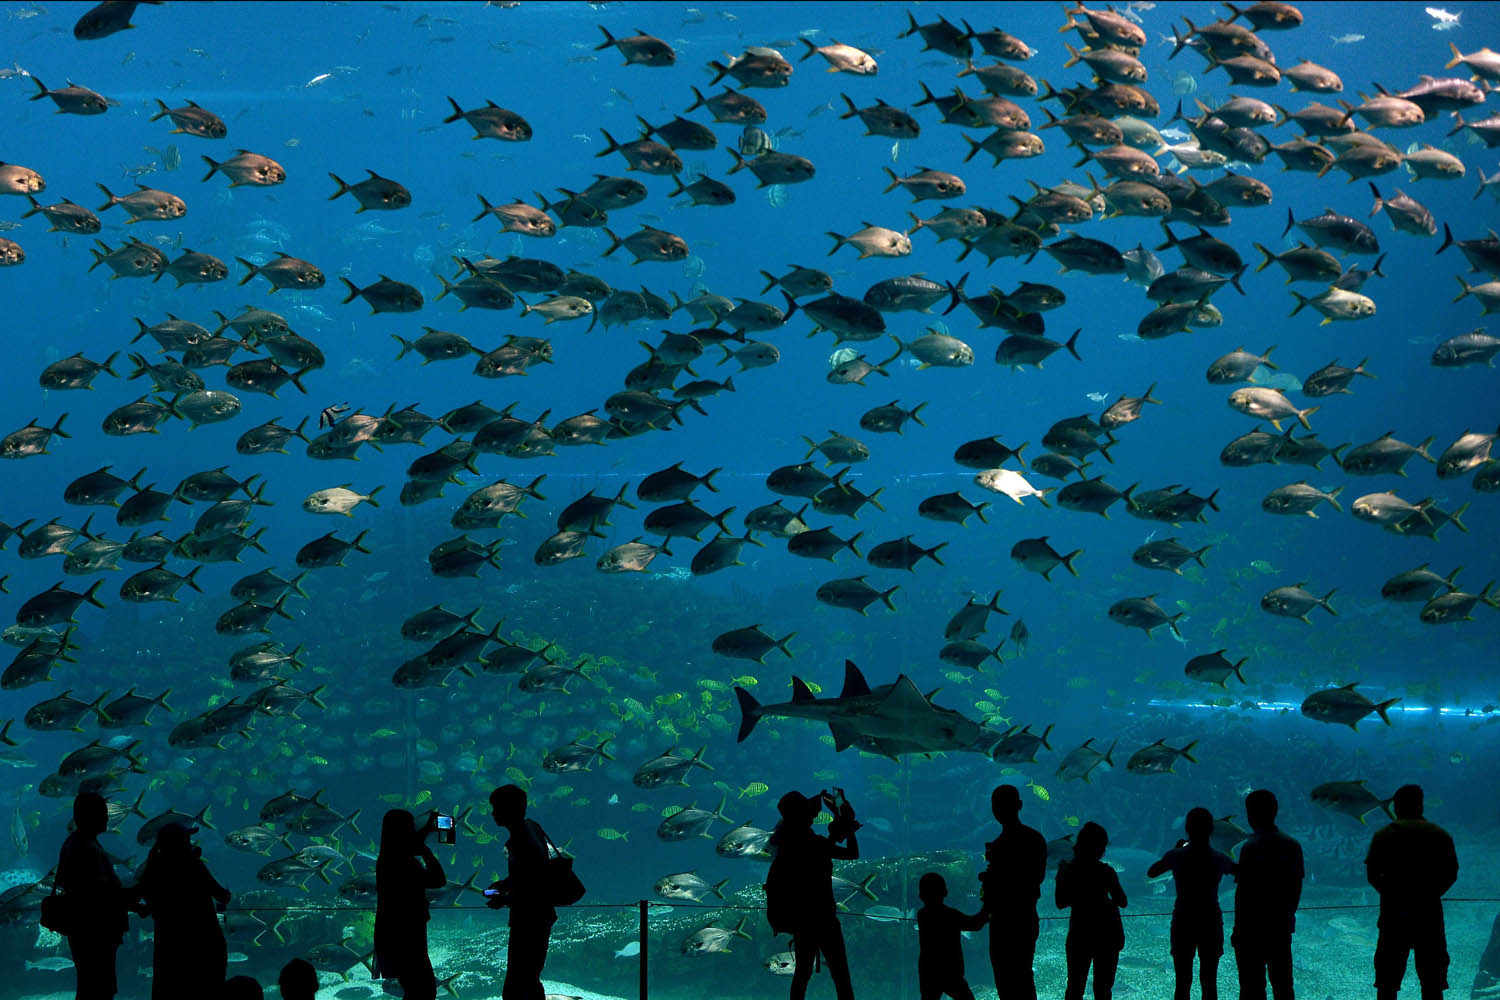 Visitors look at fish in the aquarium inside the Chimelong Ocean Kingdom in Zhuhai on April 29, 2014.